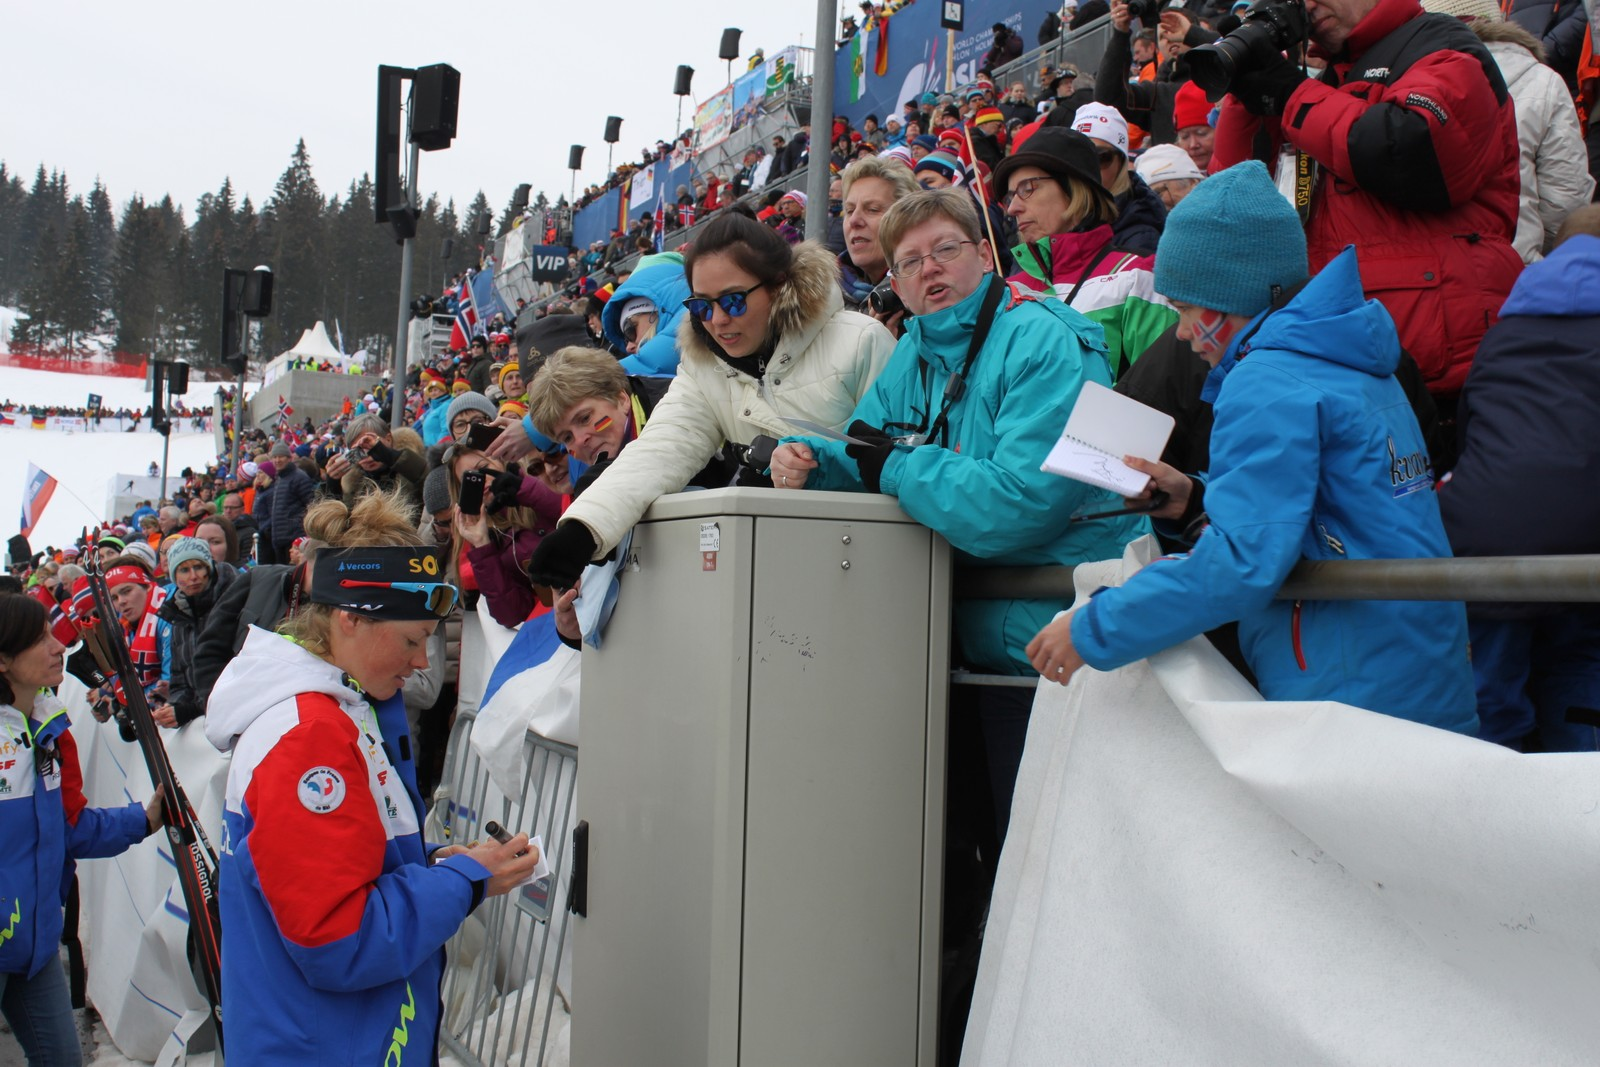 Gold medallist Marie Dorin Habert writing autographs.